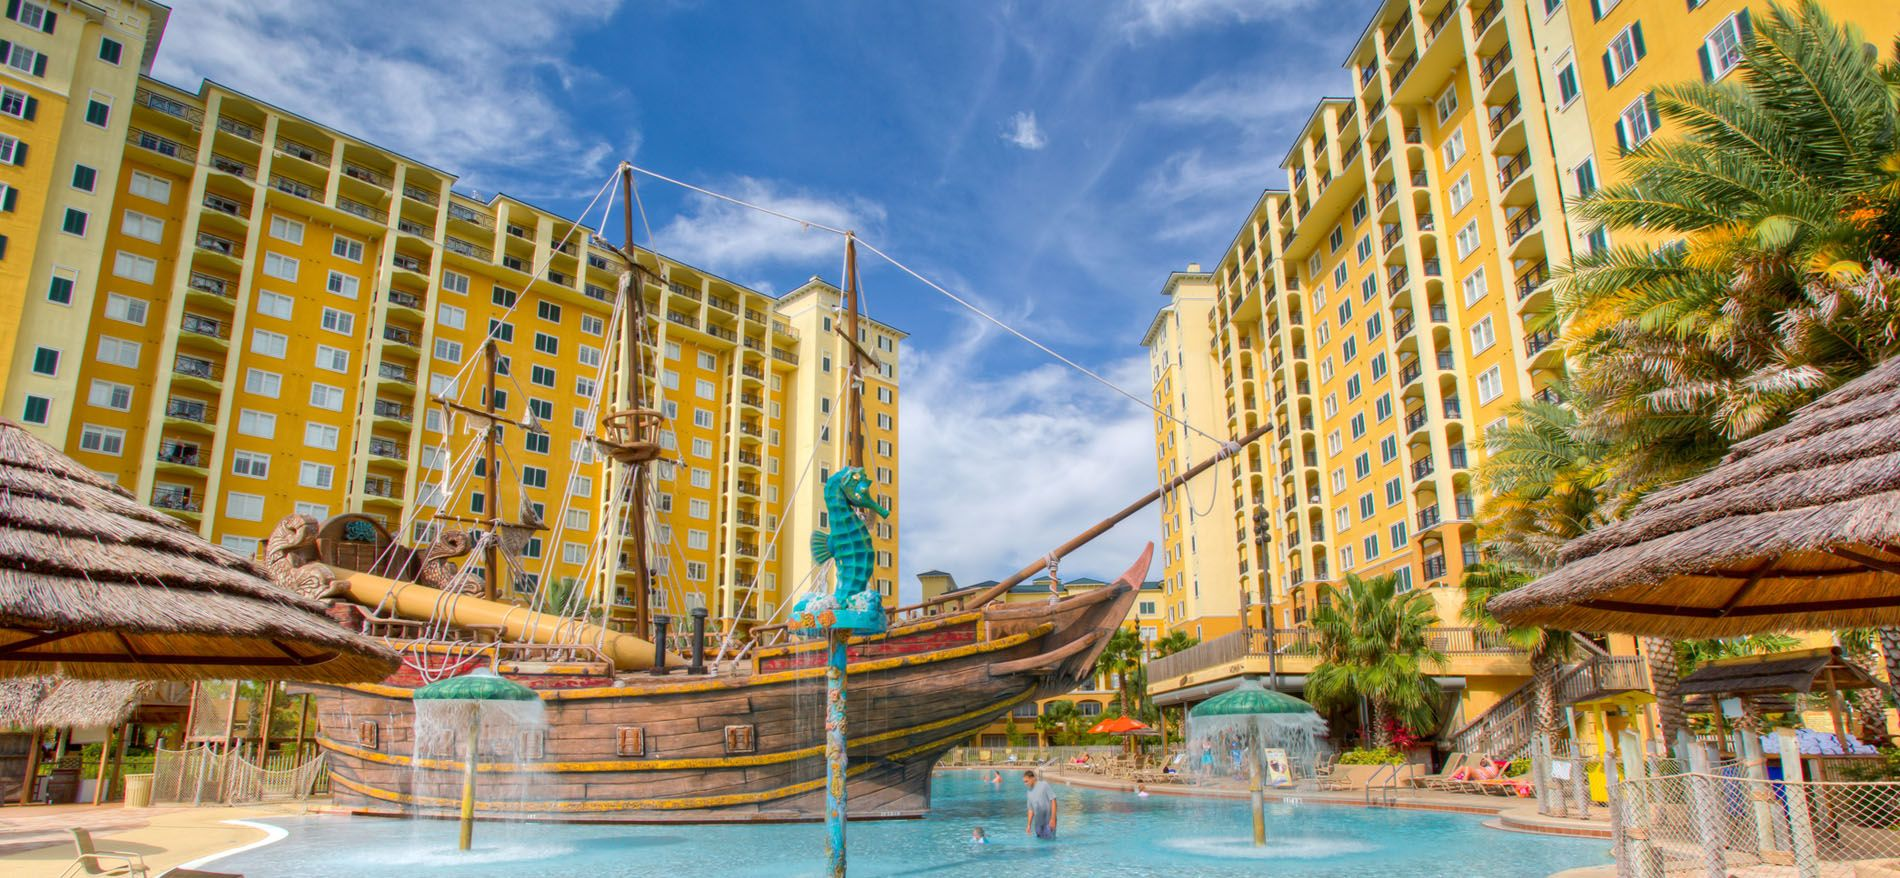 discover one of the best hotels near disney world lake buena vista rh za pinterest com